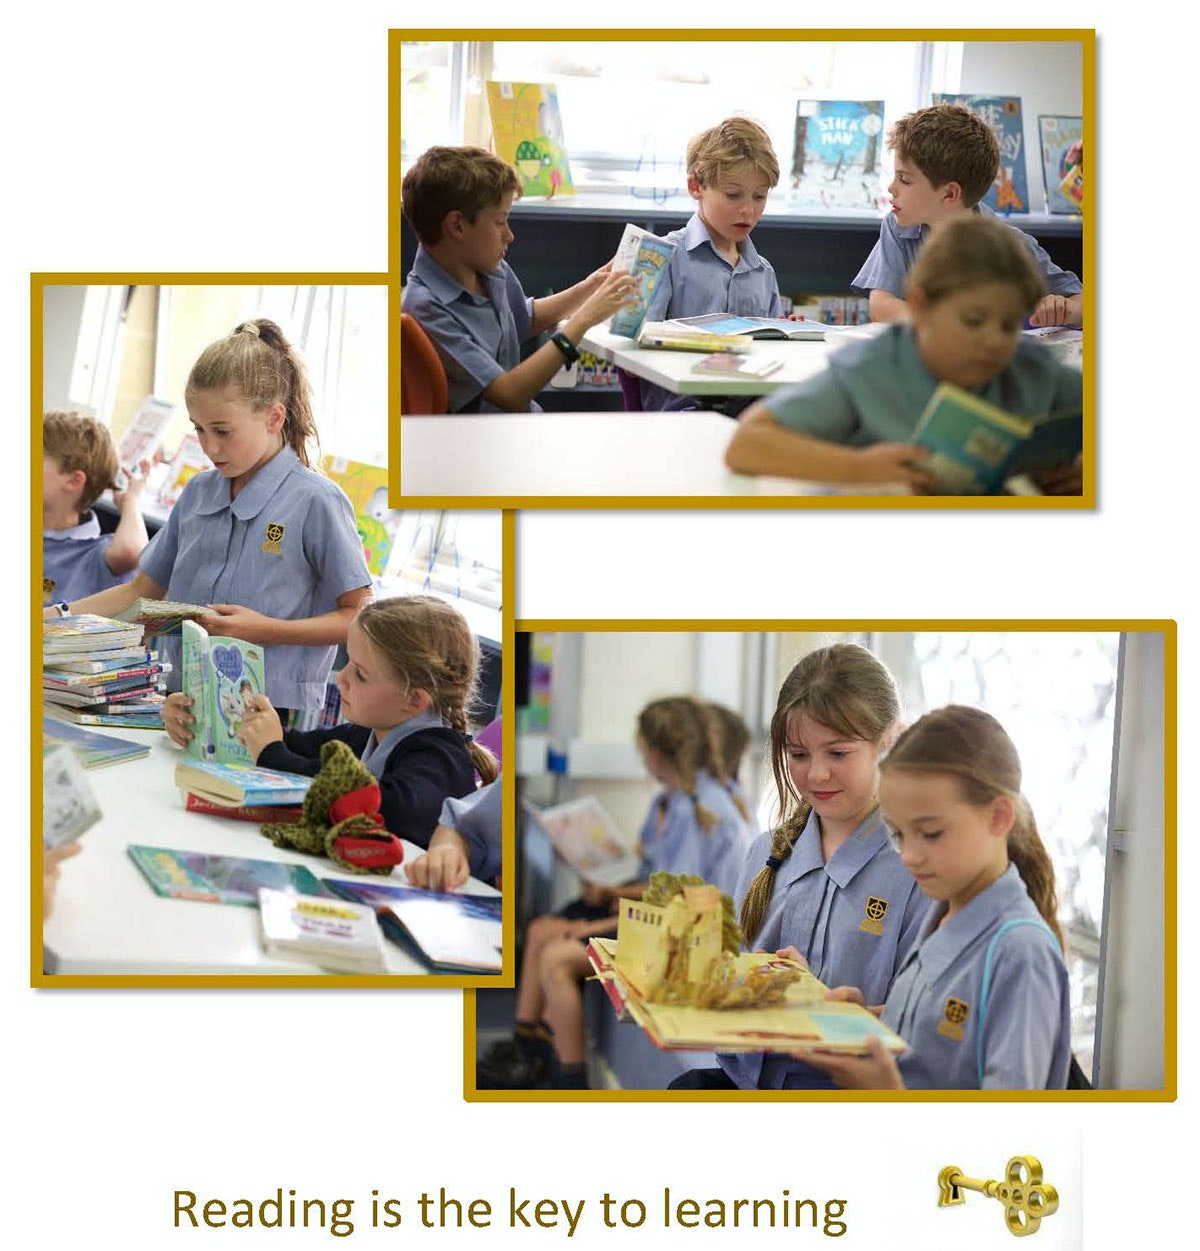 reading-is-the-key-to-learning.jpg